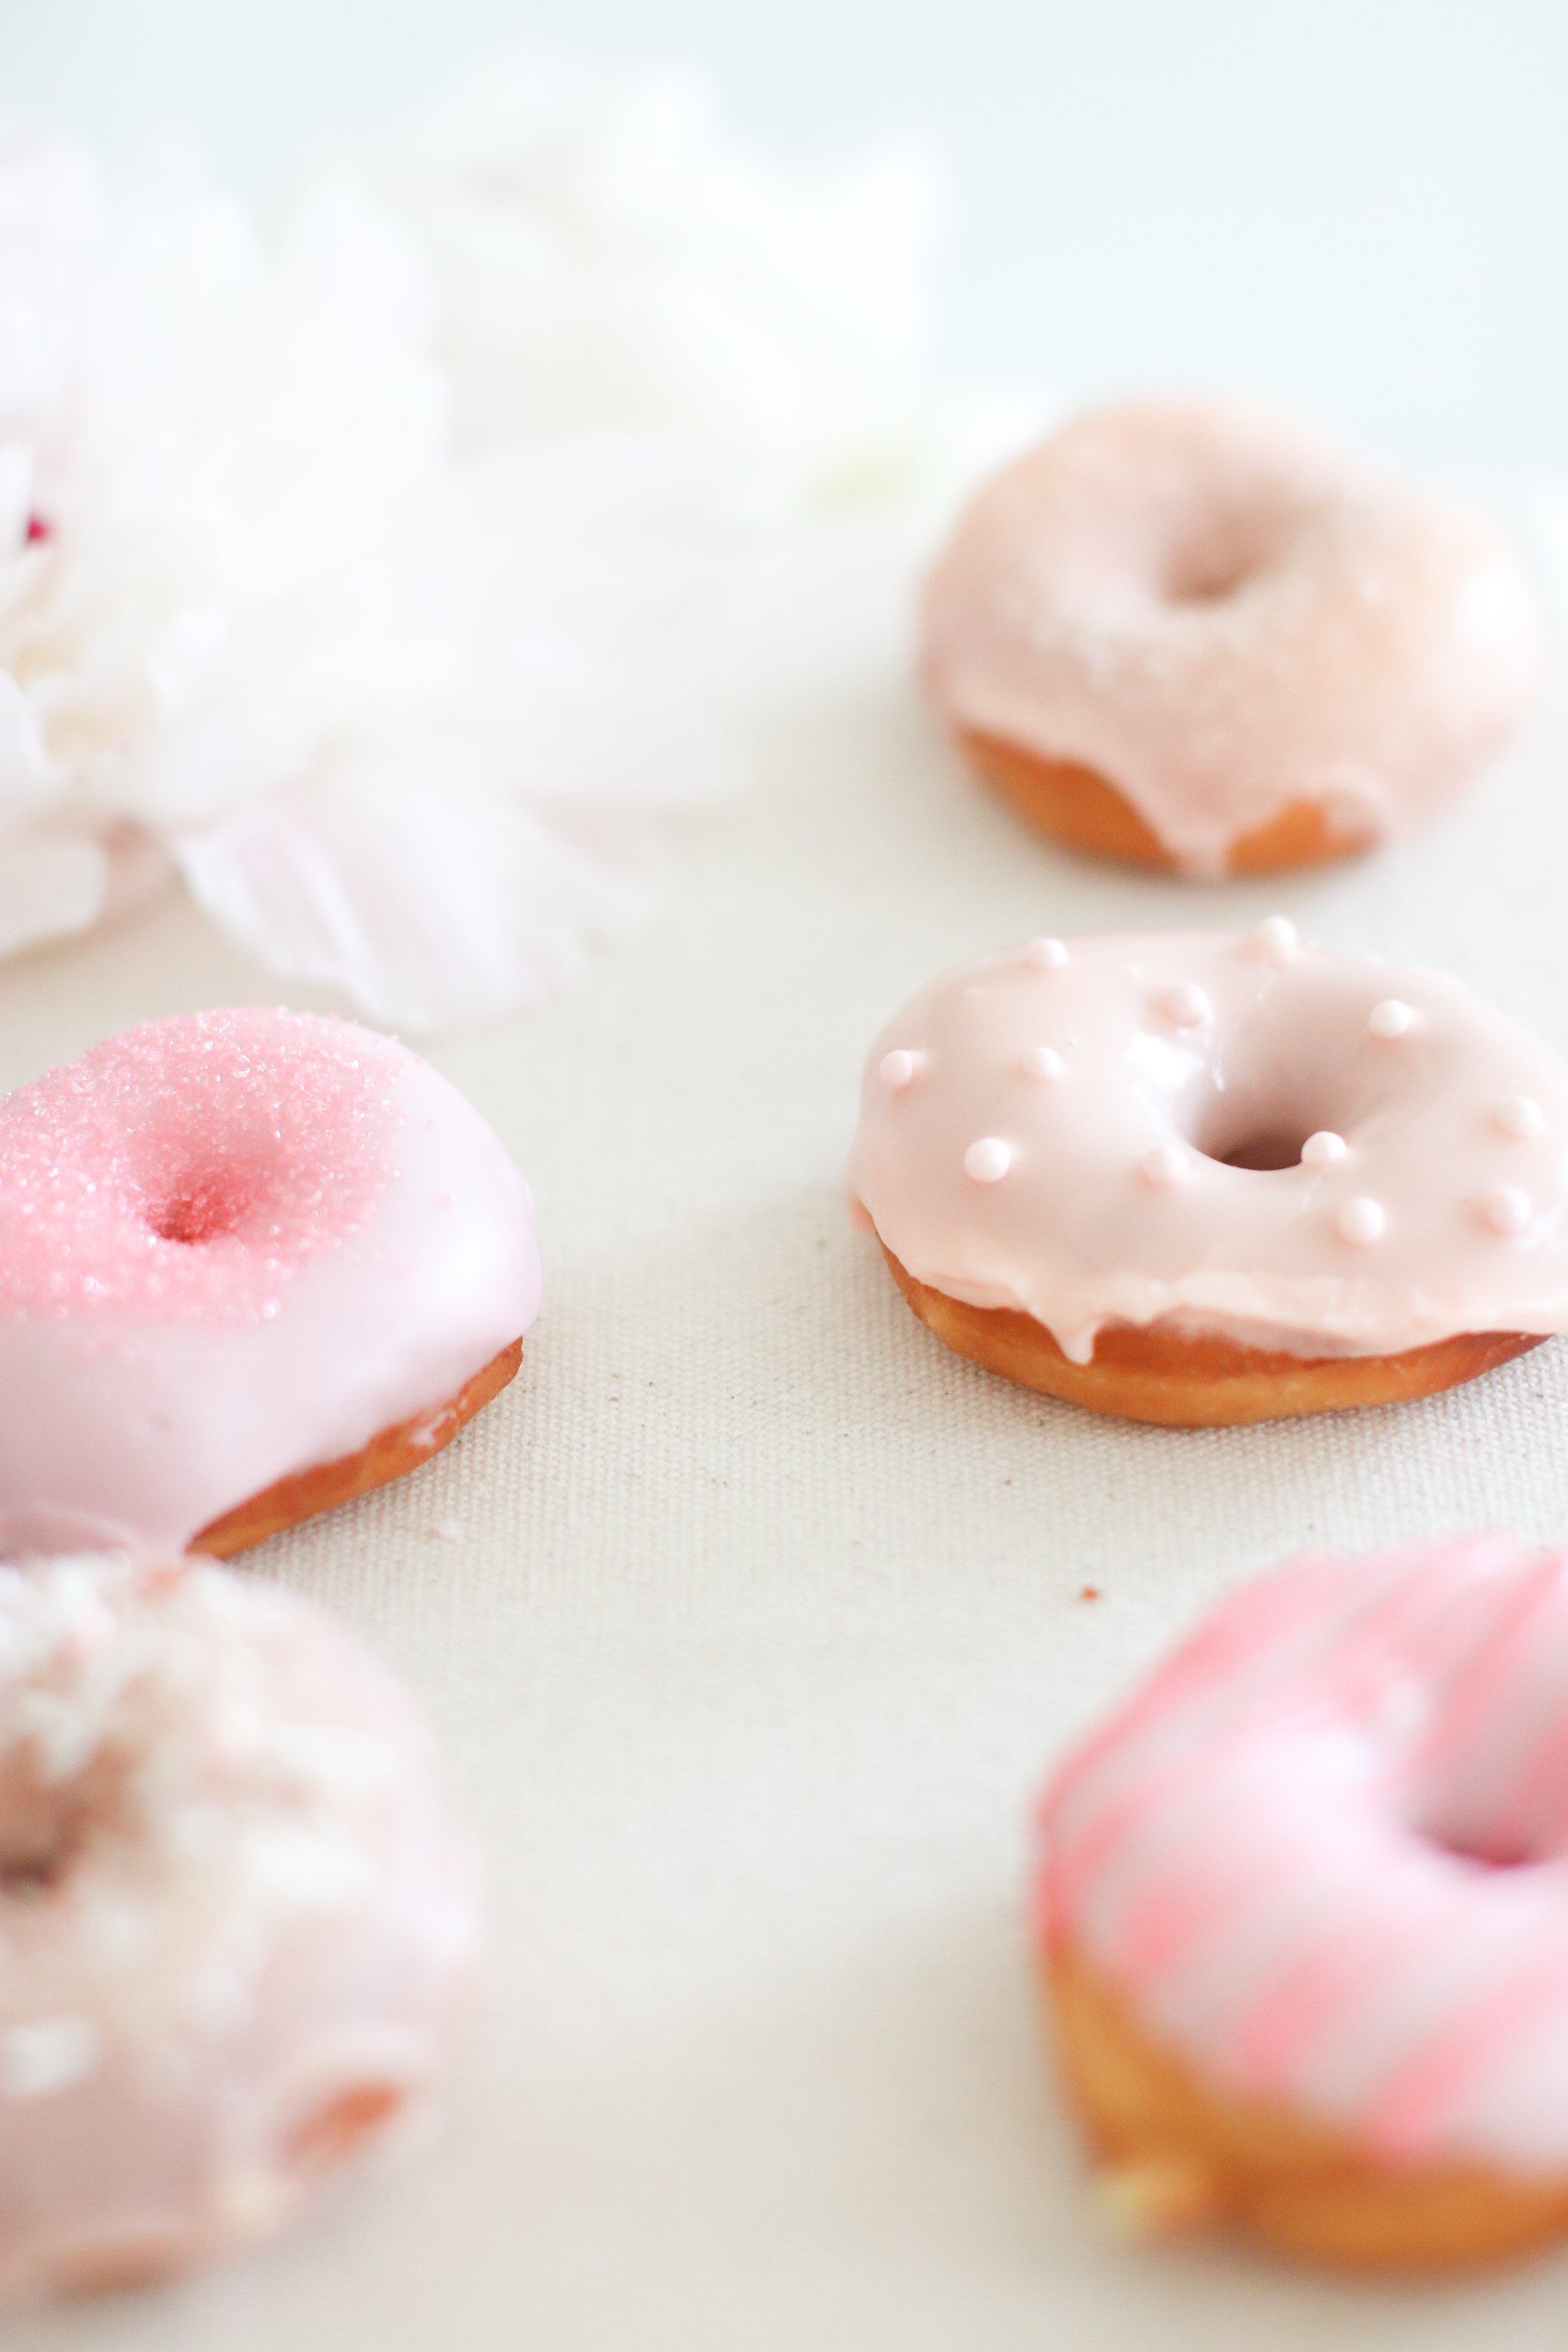 Mini Donut Sprinkles Icing DIY How to Make Donuts Donut Recipe Pink Monika Hibbs